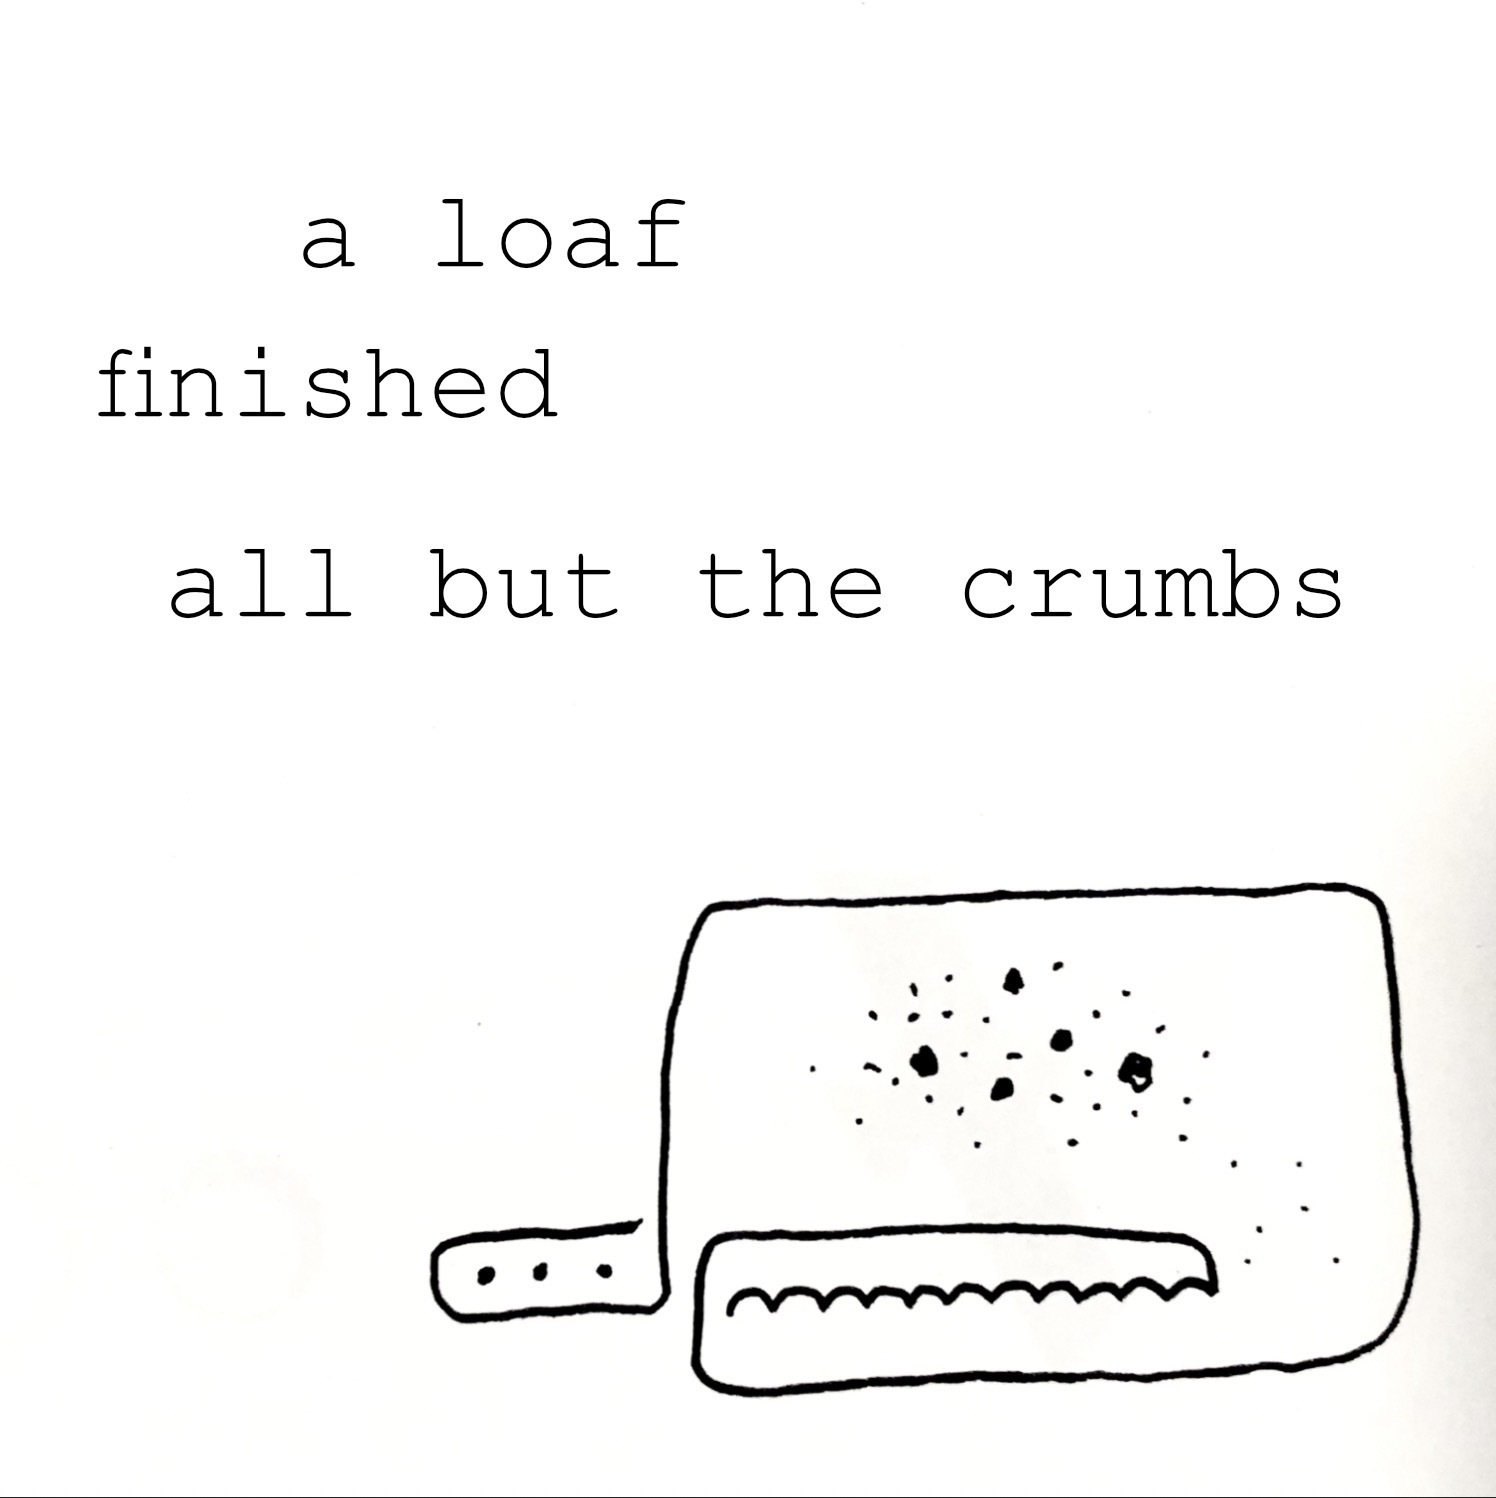 a loaf finished all but the crumbs